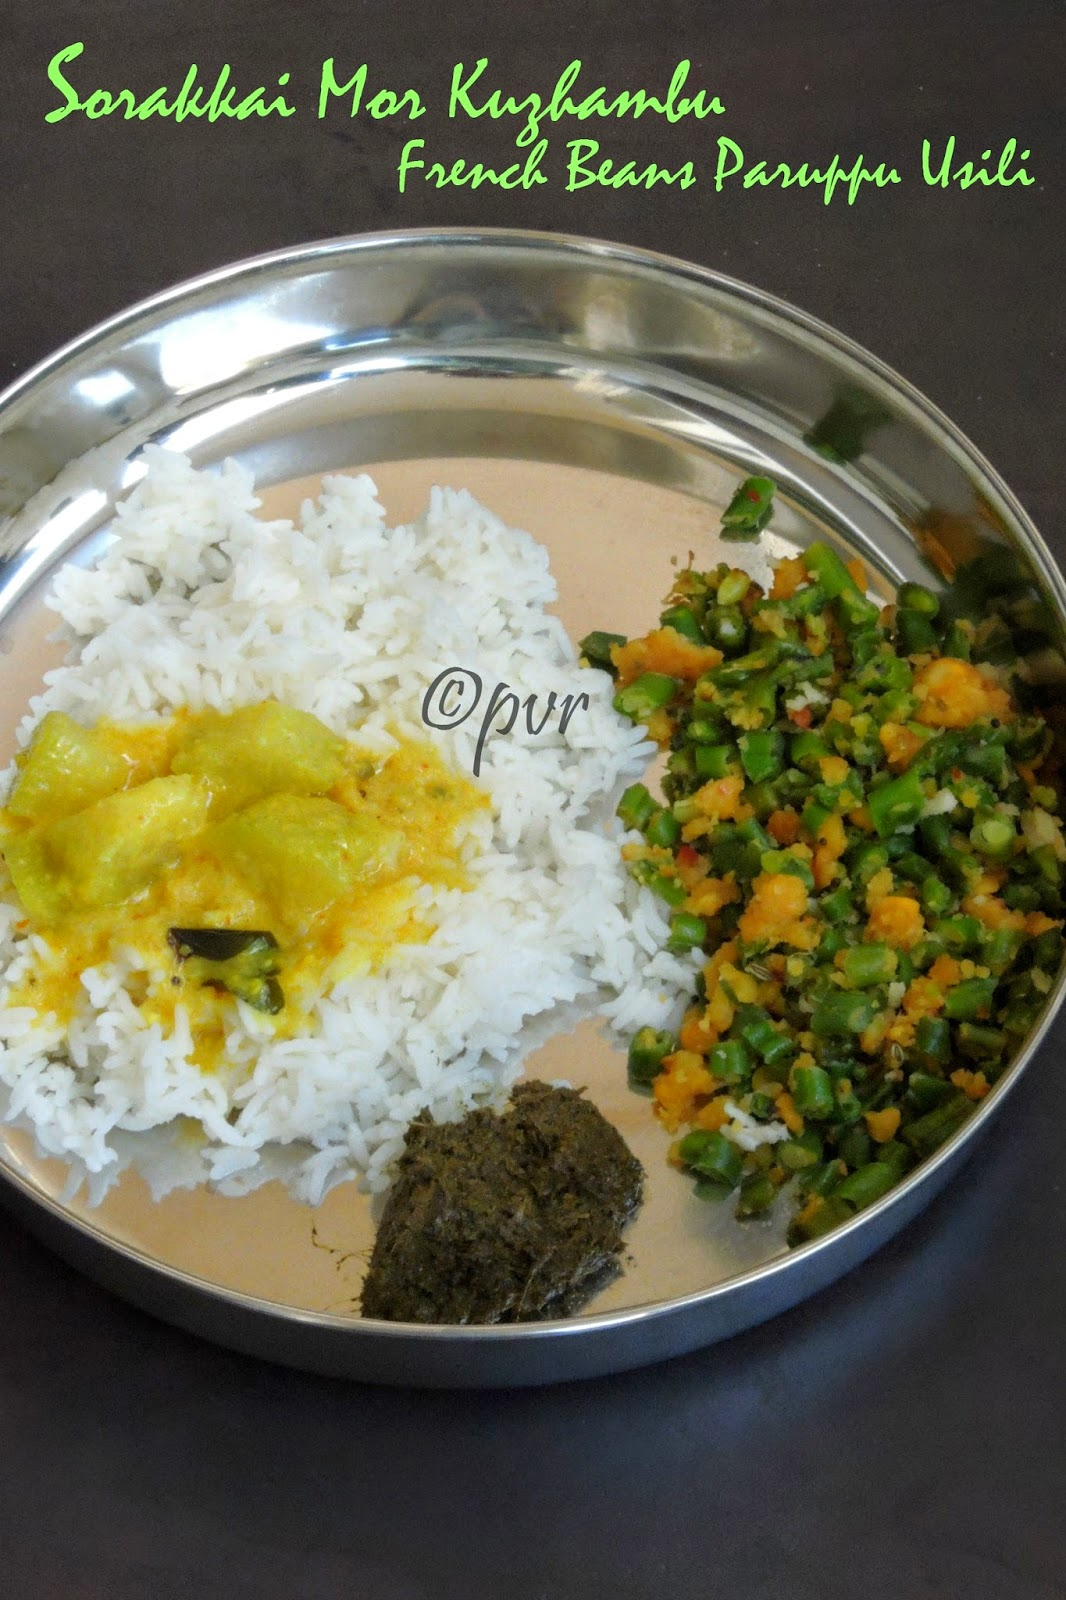 Sorakkai Mor Kuzhambu & French beans paruppu usili, bottlegourd buttermilk curry and Beans dal stir fry